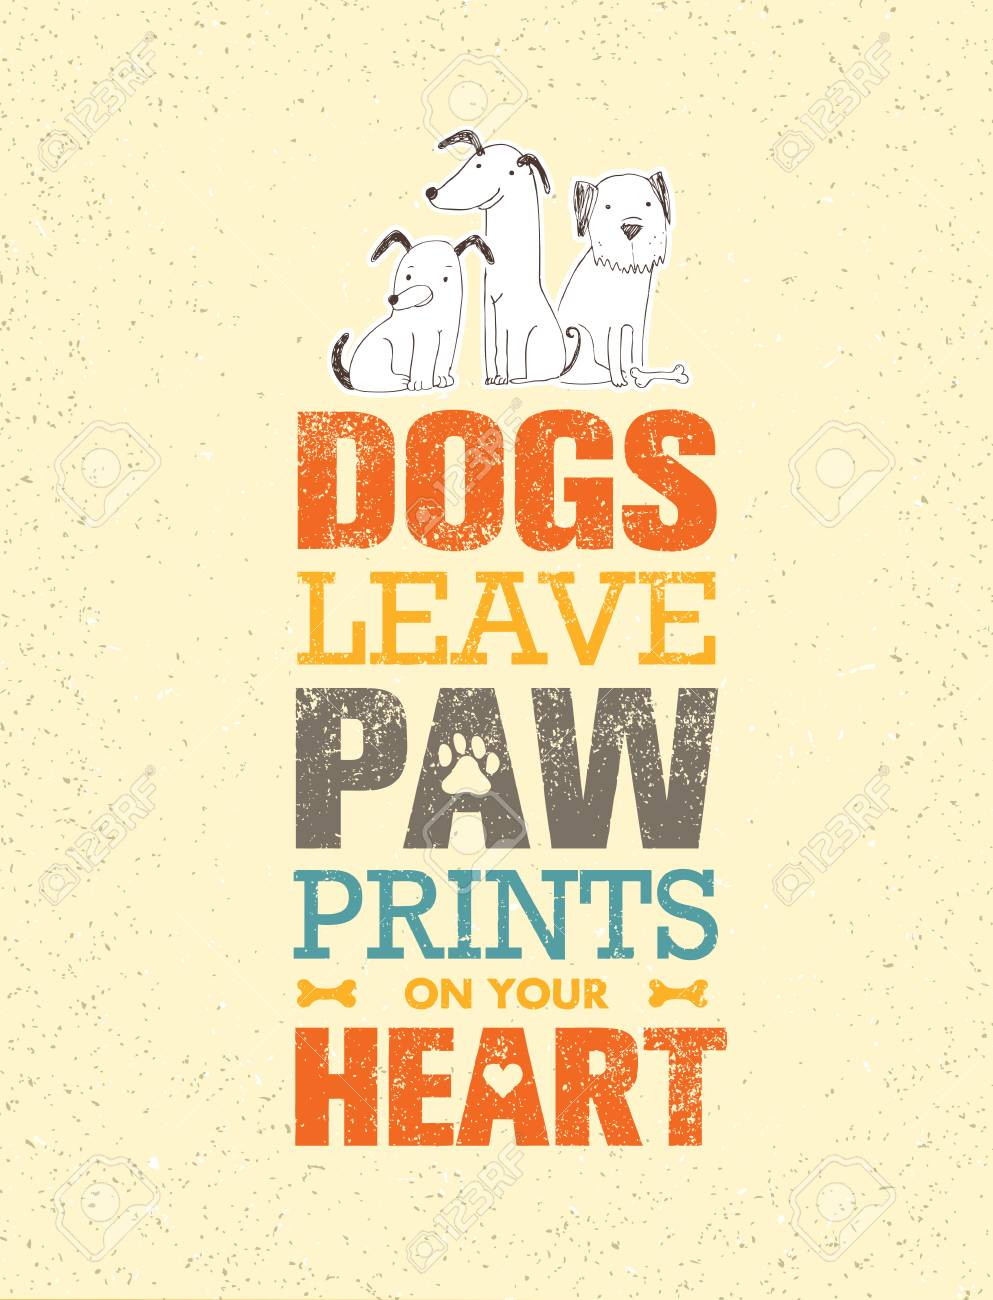 Dogs Leave Paw Prints On Your Heart. Outstanding Quote Cute Vector Concept on Recycled Cardboard Background - 71455111